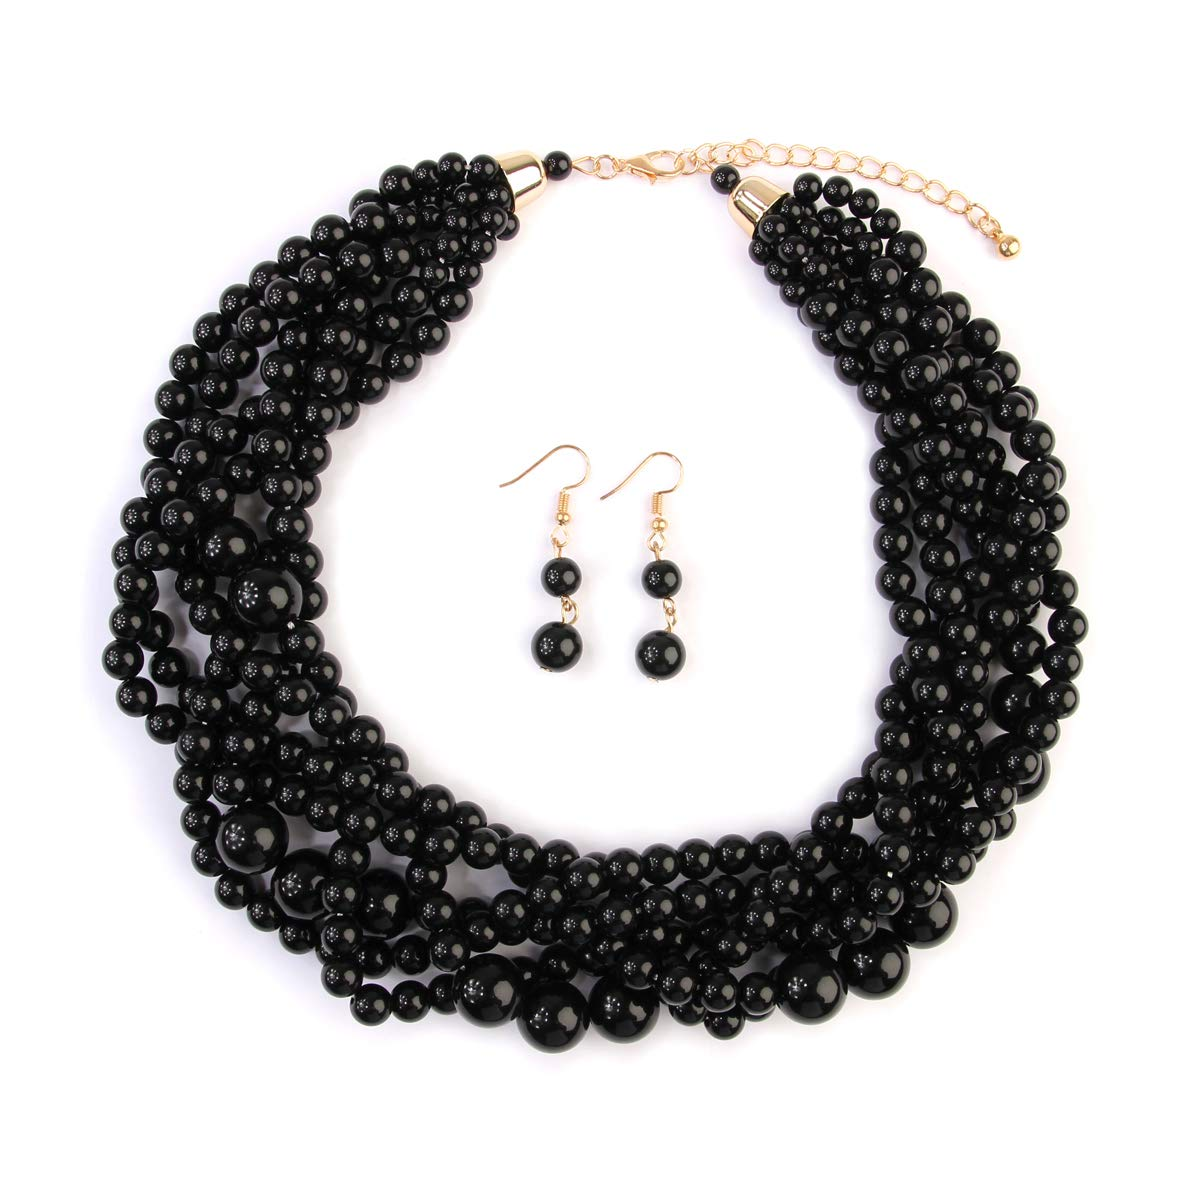 MYS Collection Women's Braided Beaded Bubble Statement Necklace - Multi Strand Colorful Bead Layered Collar Necklace (Black)